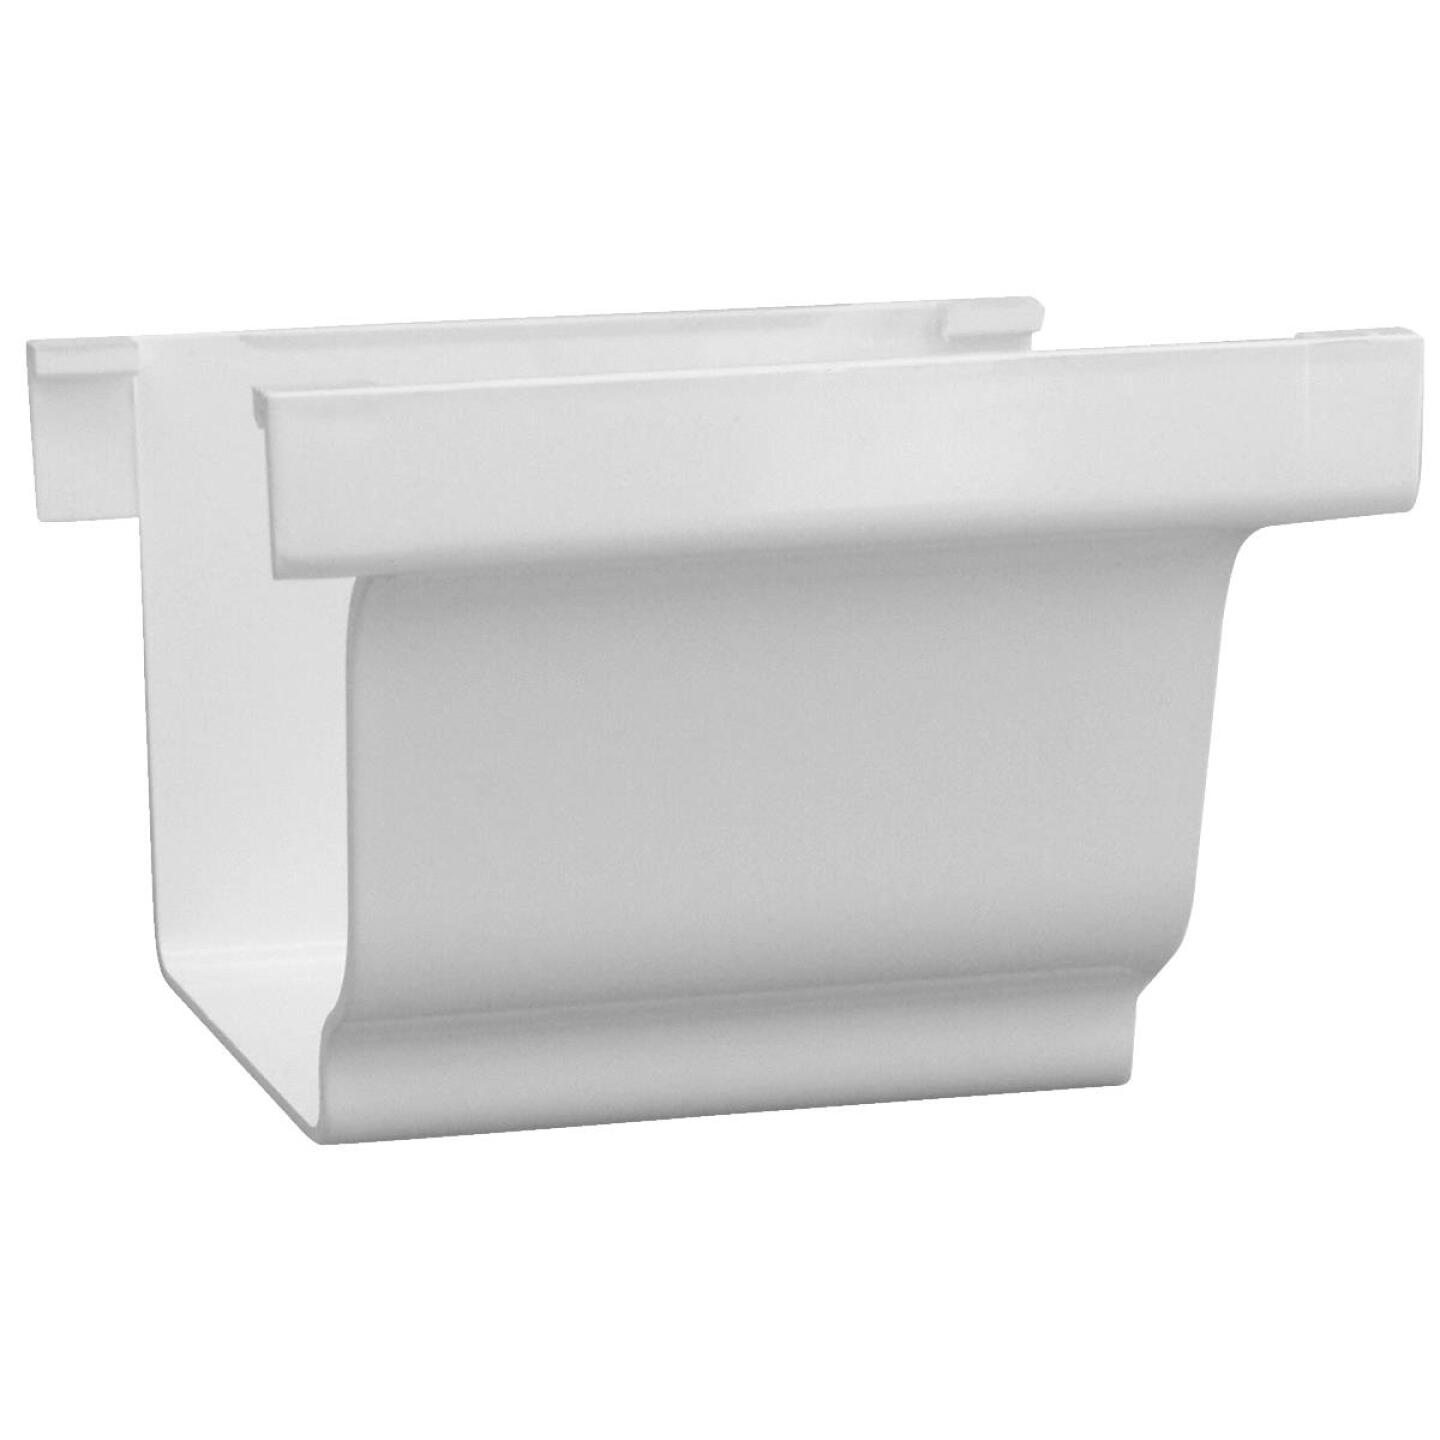 Repla K 5 In. Vinyl White Gutter Connector Image 1